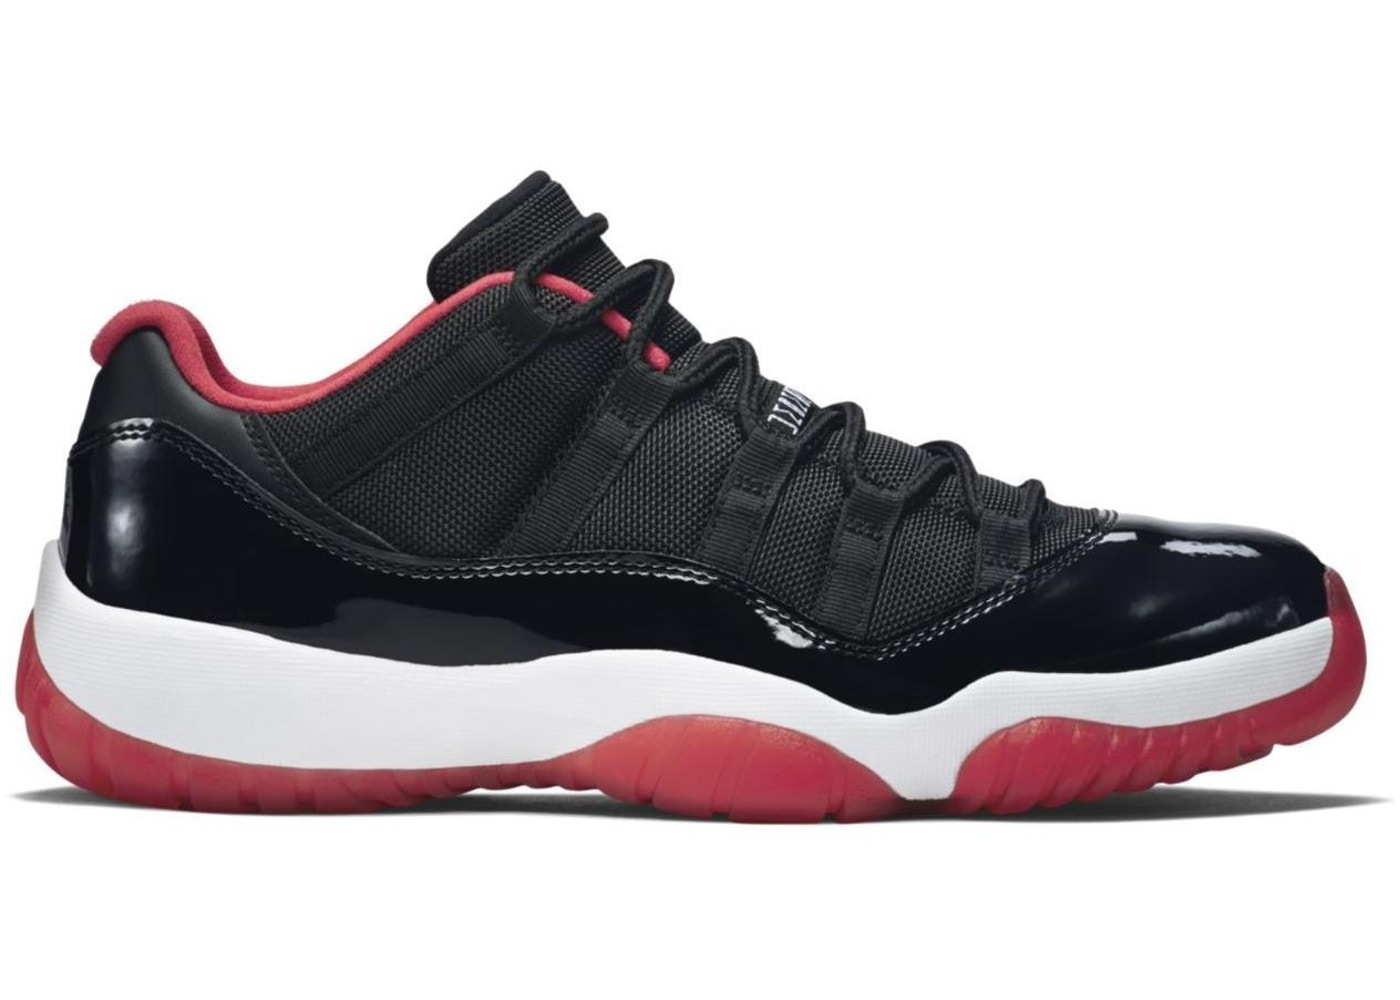 8331397be5b6 Buy Air Jordan 11 Shoes   Deadstock Sneakers